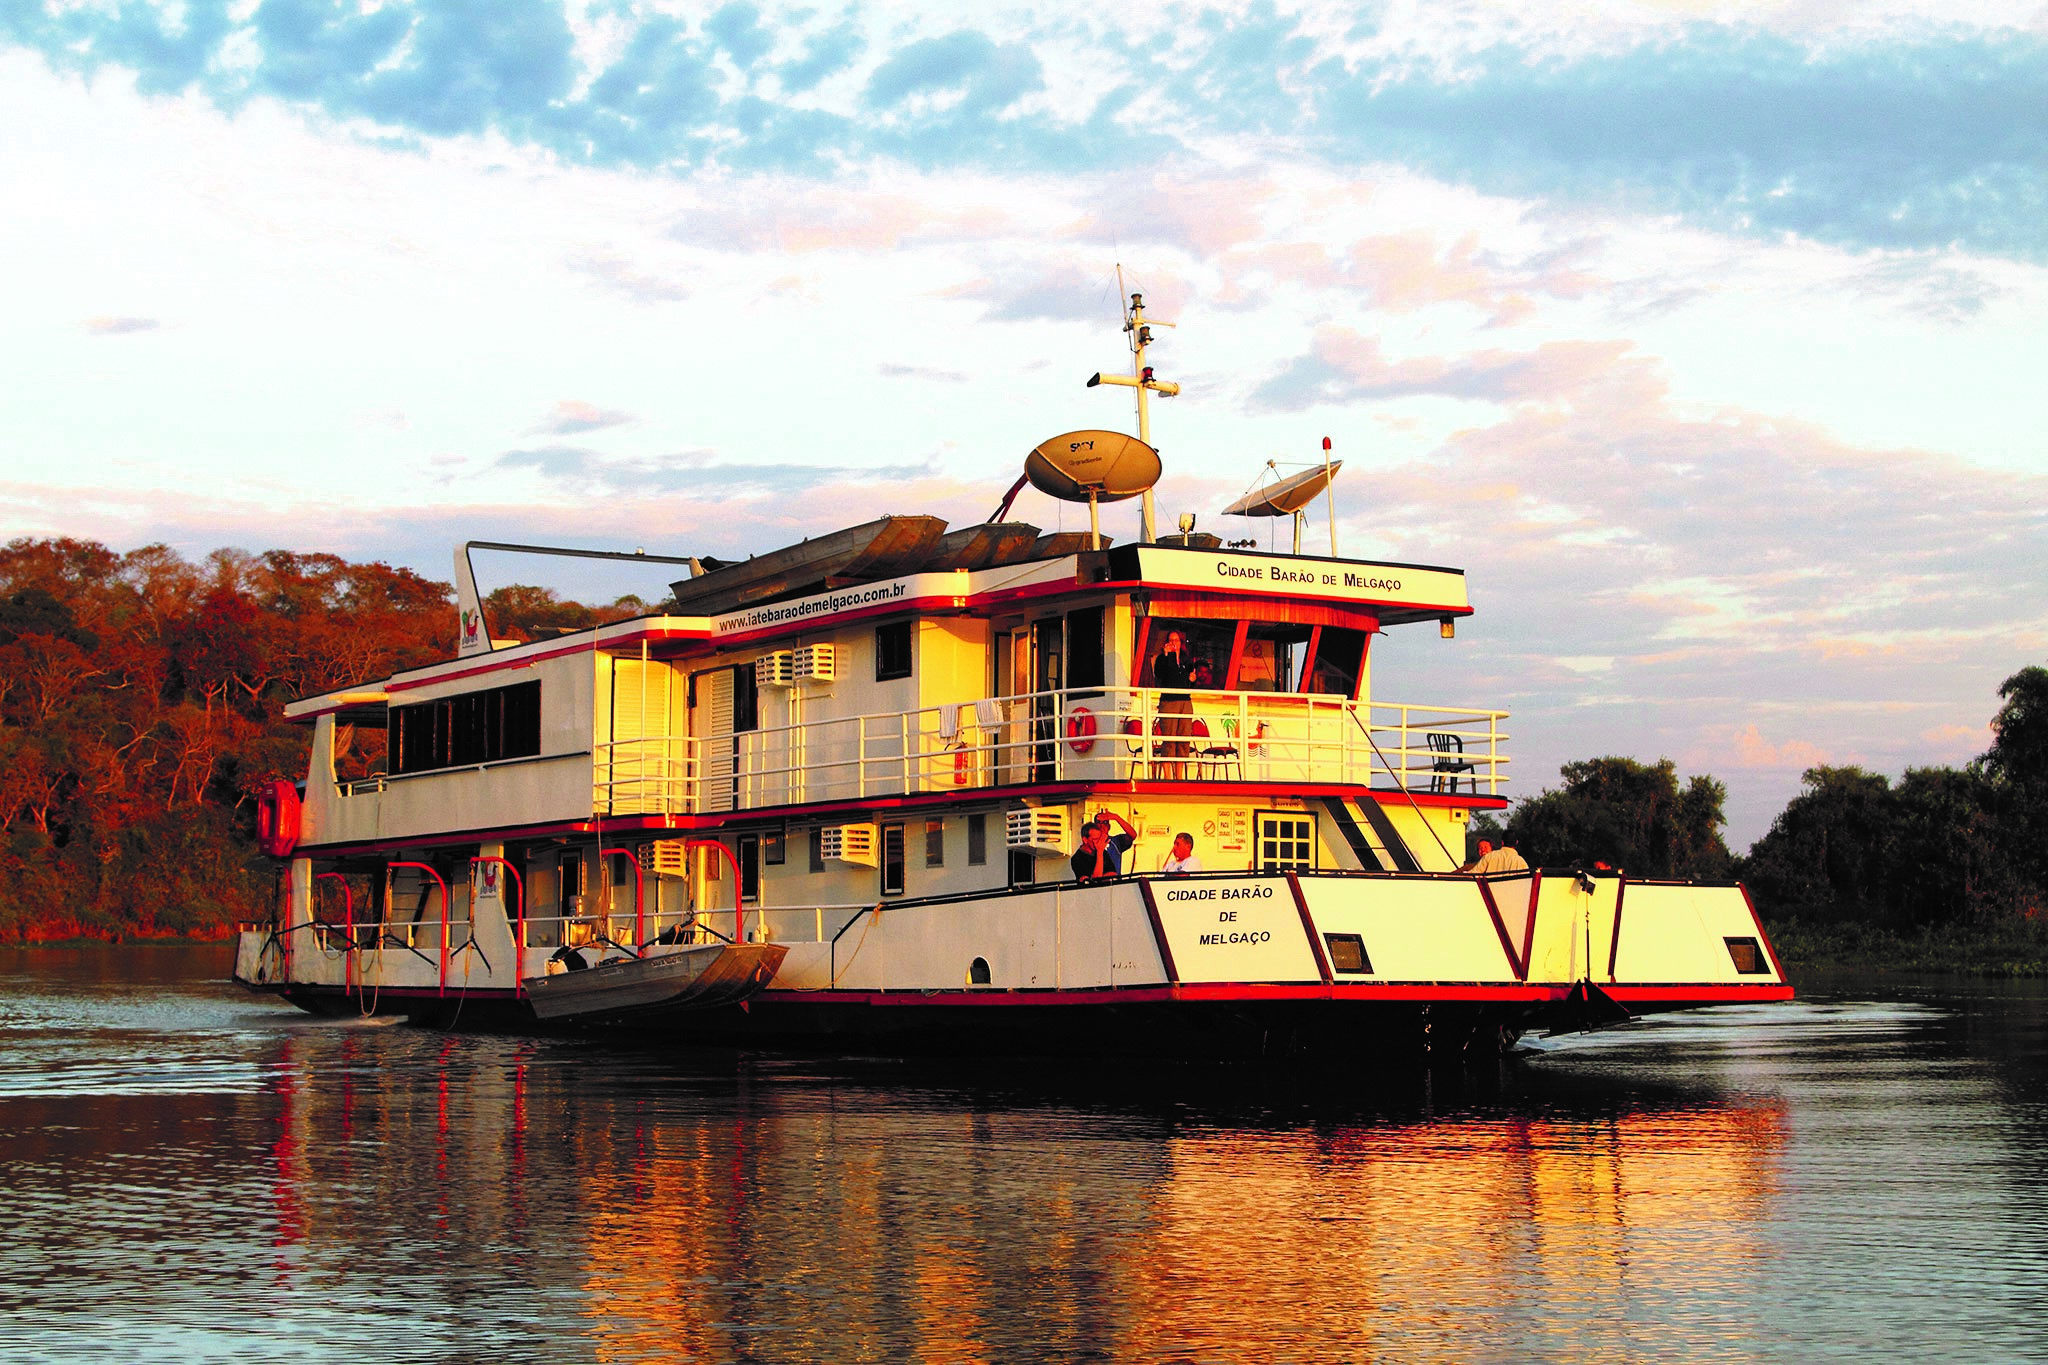 Jaguar Houseboat Experience Amazon Cruise Negro River Amazon River Brazil South America South American Travel Specialists